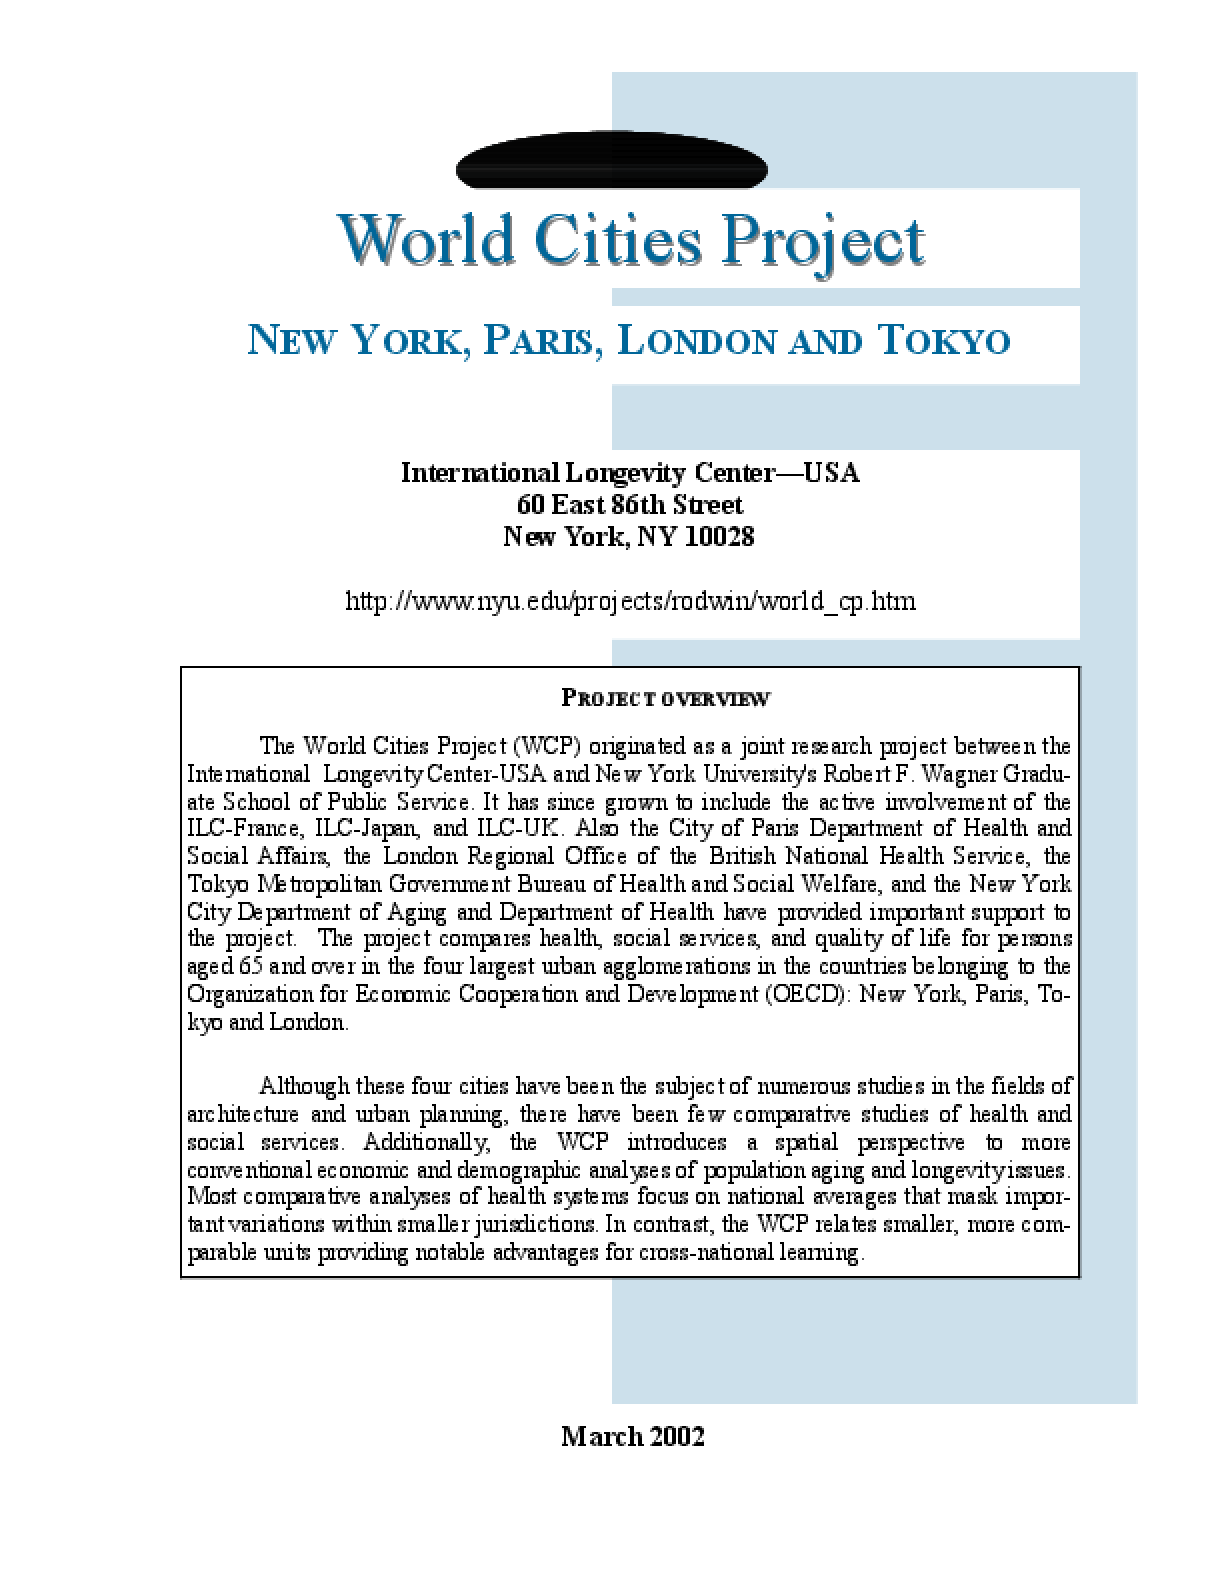 World Cities Project: New York, Paris, London, Tokyo Fact Sheet